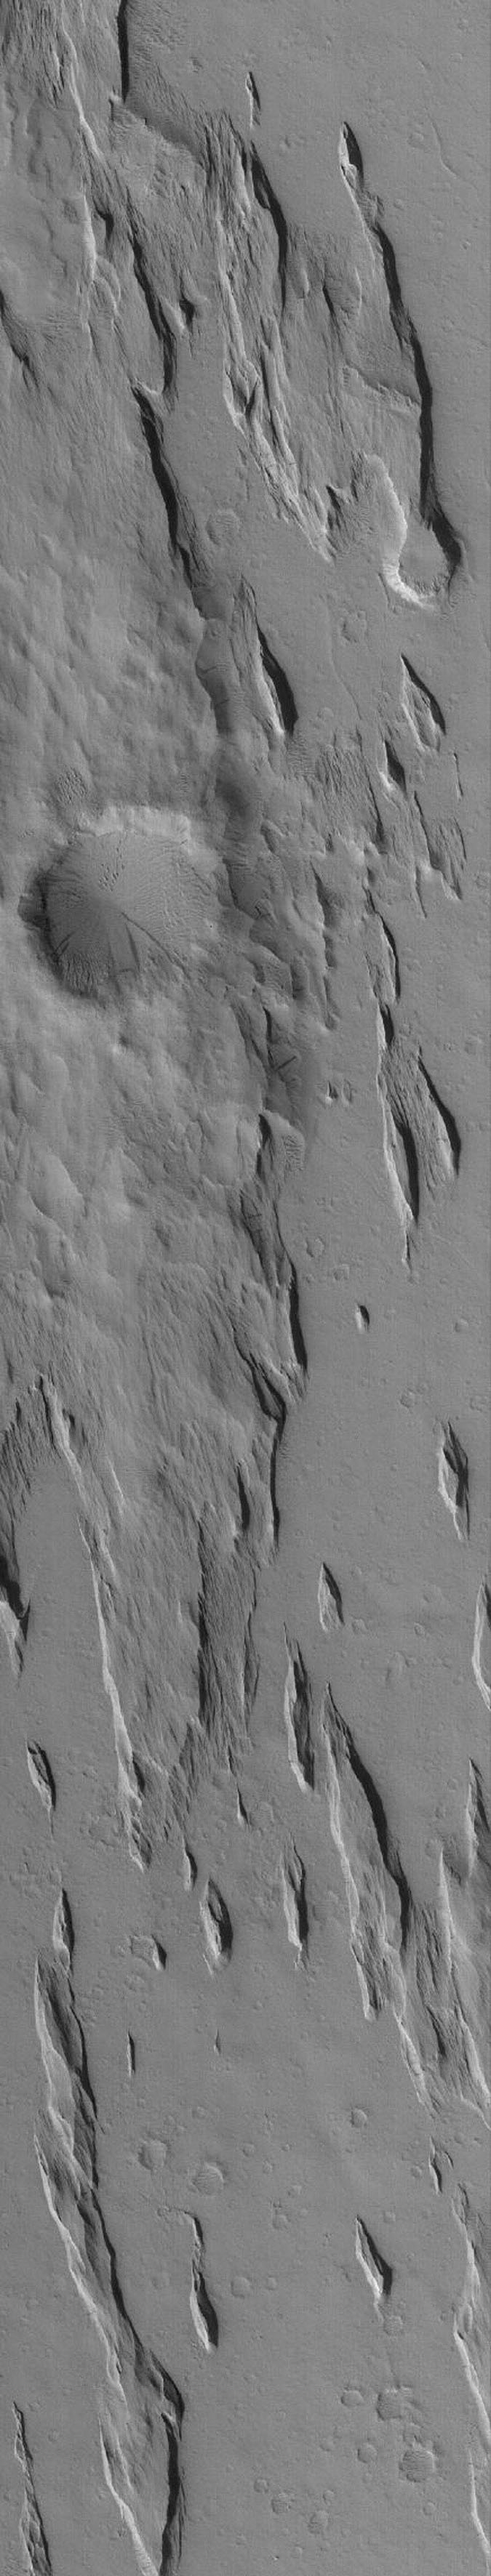 NASA's Mars Global Surveyor shows yardangs, a typical ridge pattern formed by wind erosion, in southern Amazonis on Mars.